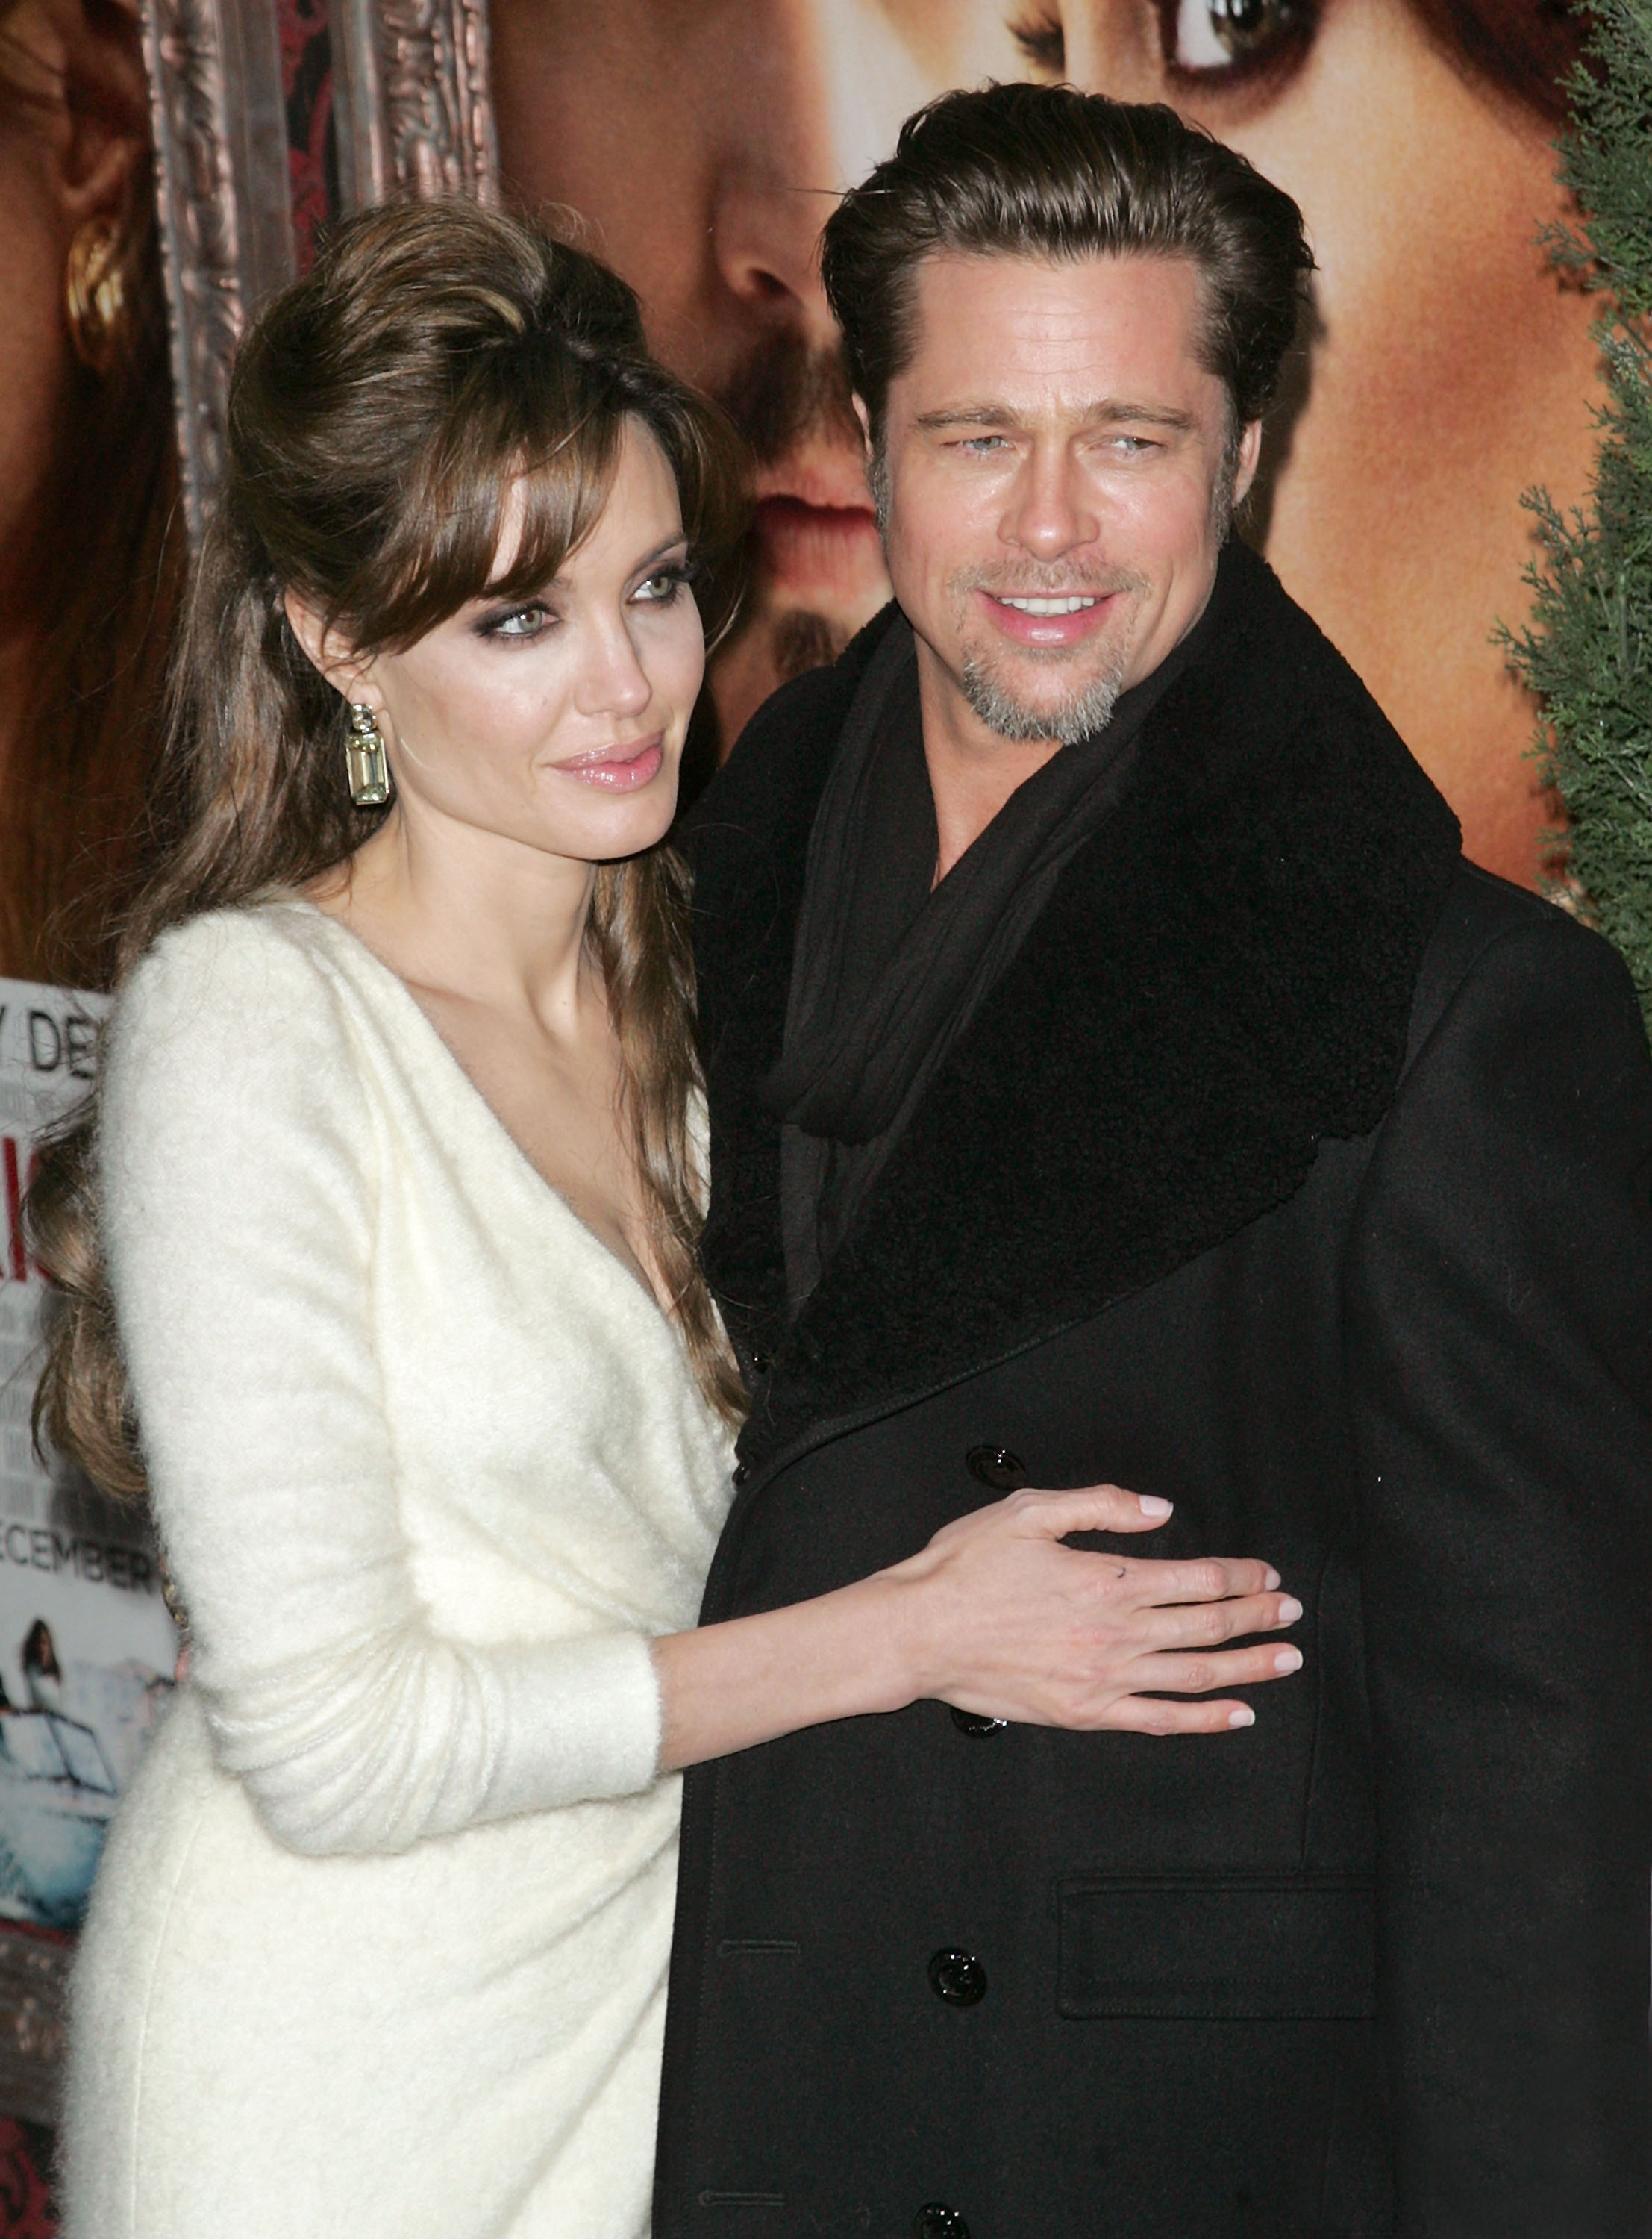 Bronzed Brad Pitt stepped out to support Angelina Jolie's big-screen project in December 2010.